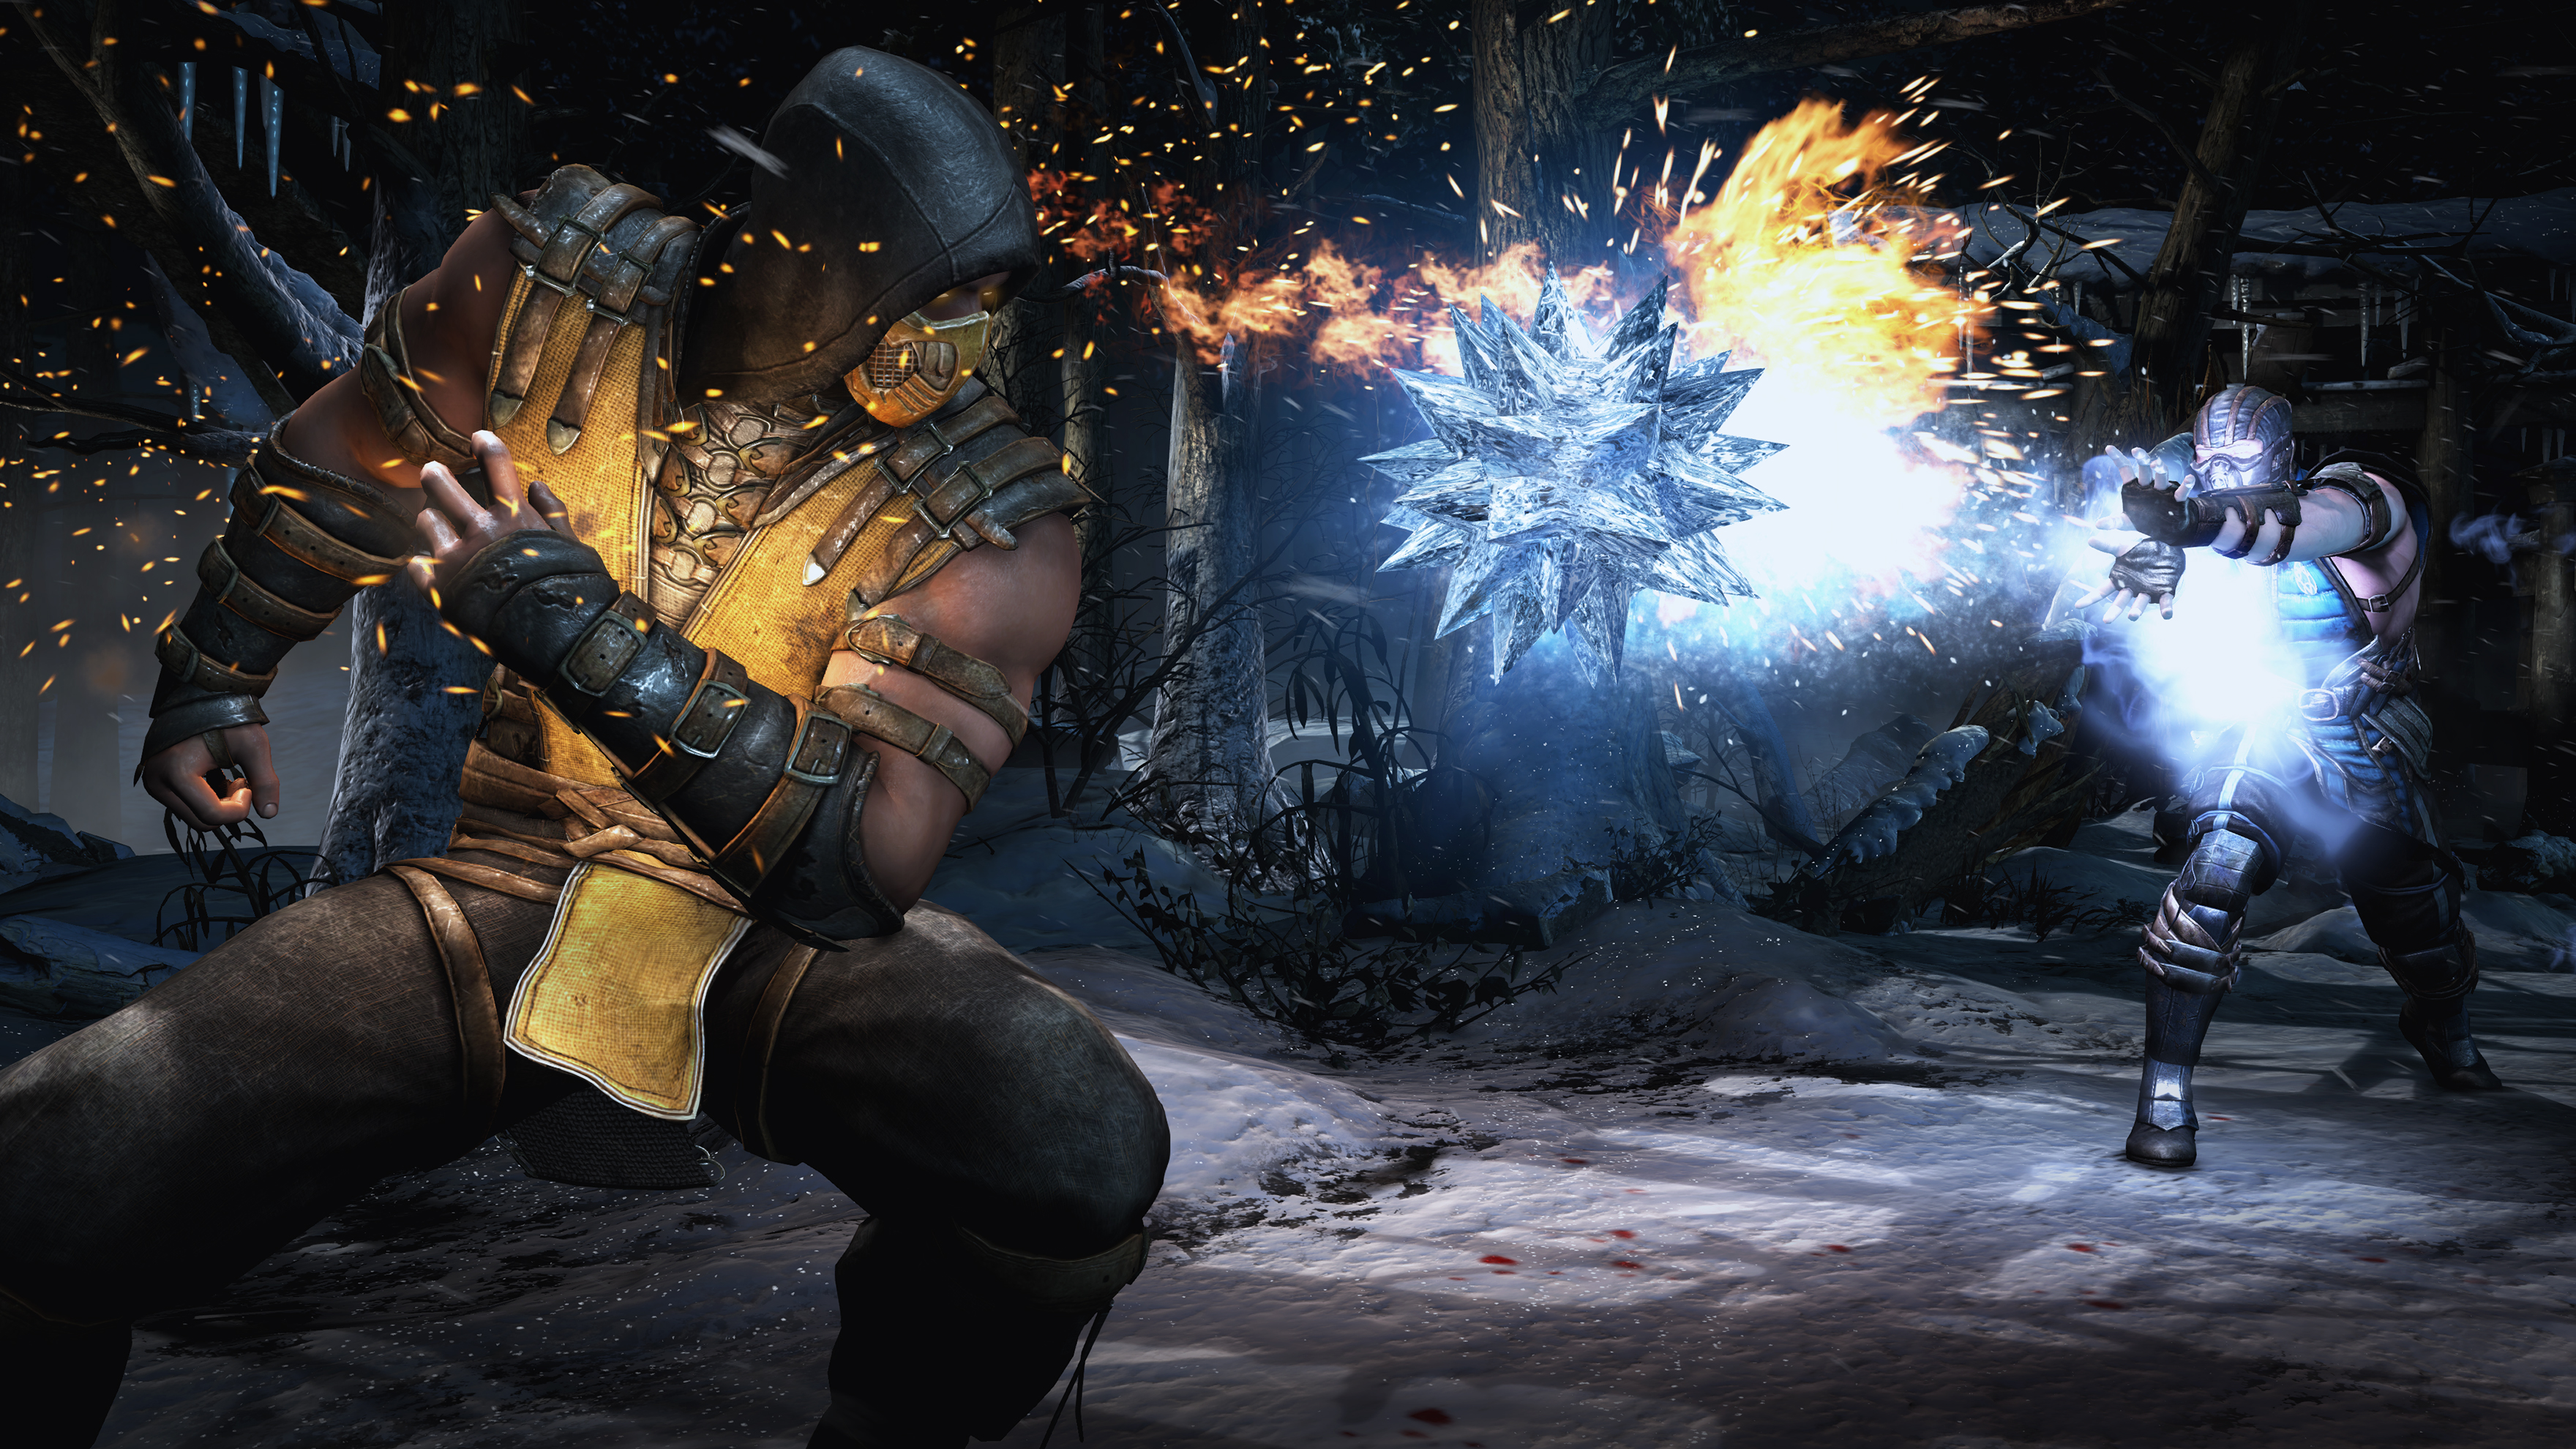 Mortal Kombat X Full Character Roster Possibly Leaked